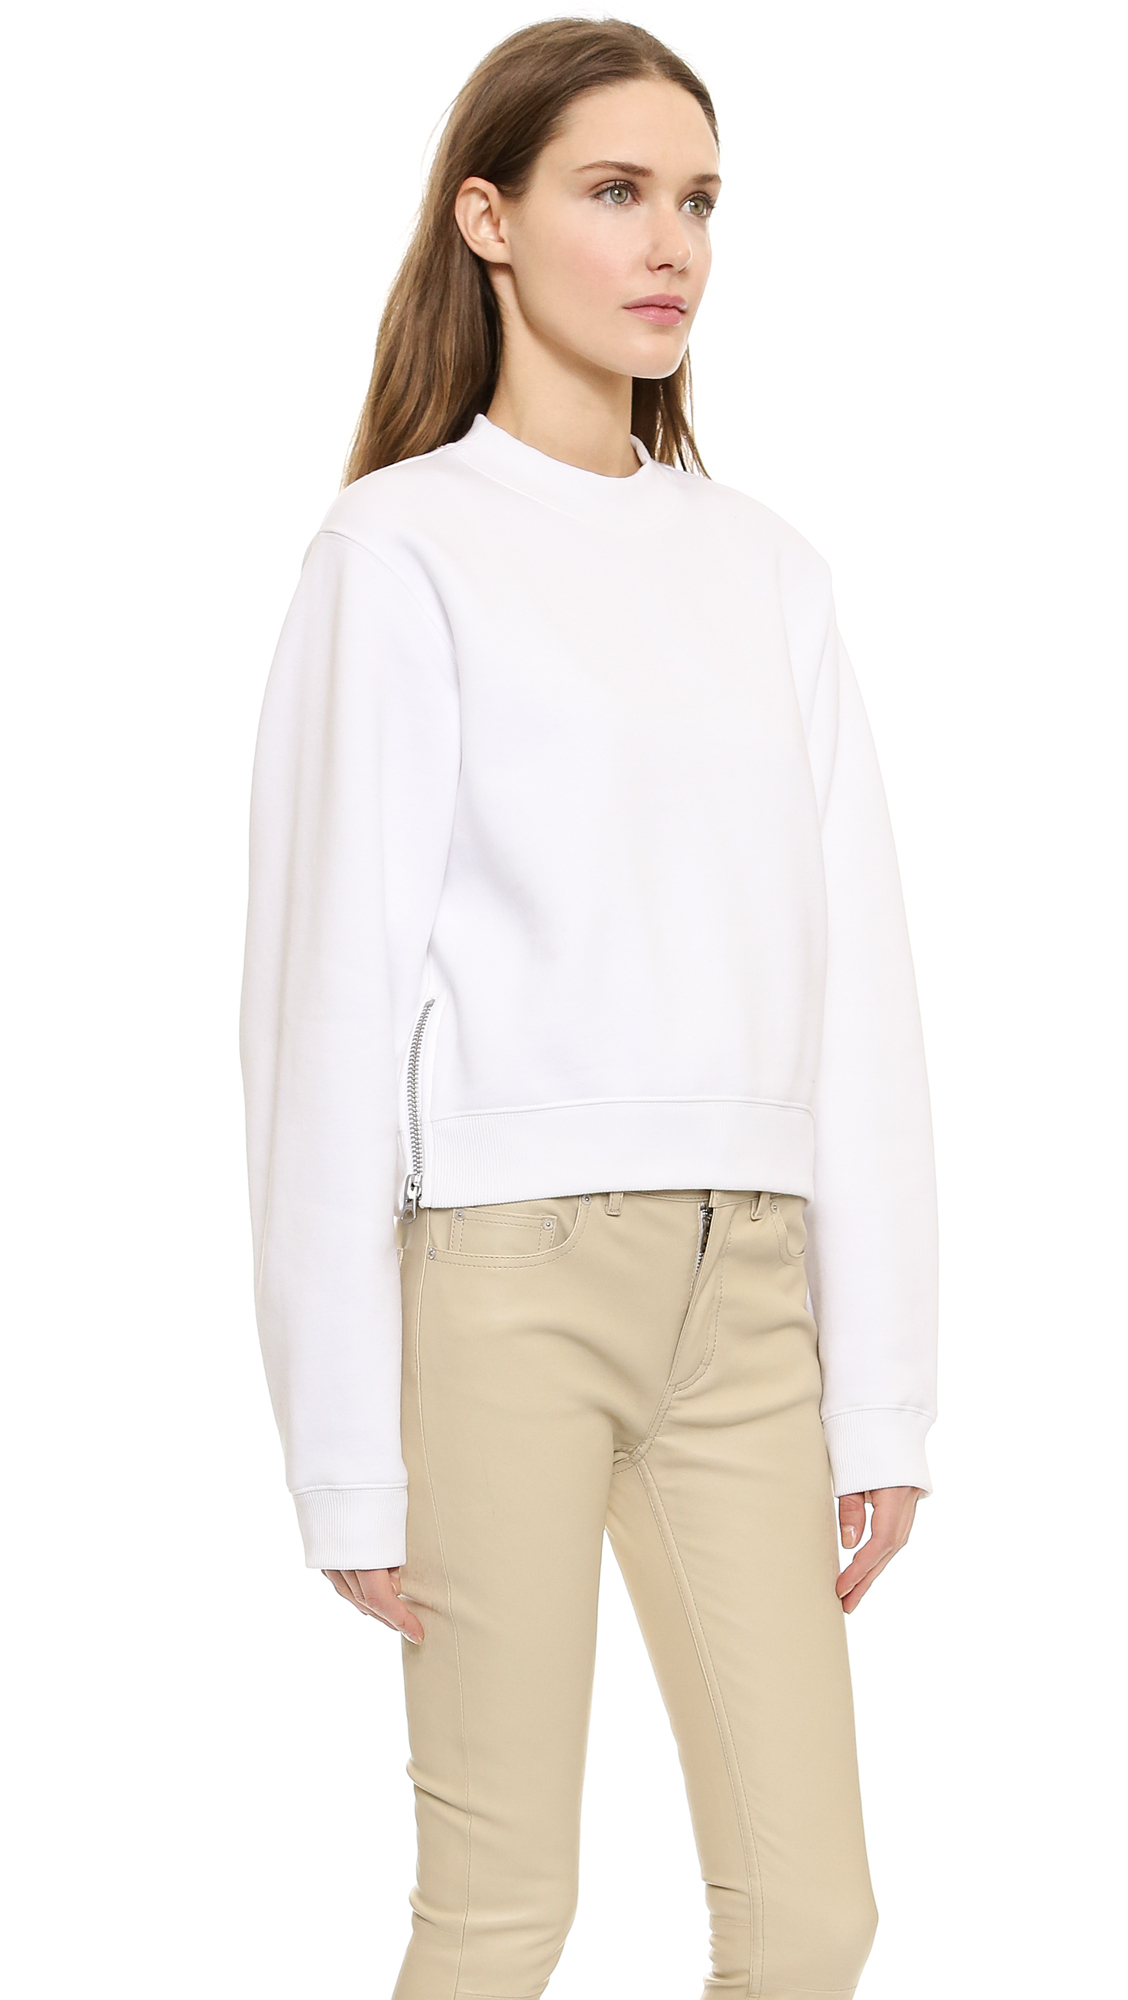 acne studios bird fleece pullover dusty pink in white lyst. Black Bedroom Furniture Sets. Home Design Ideas